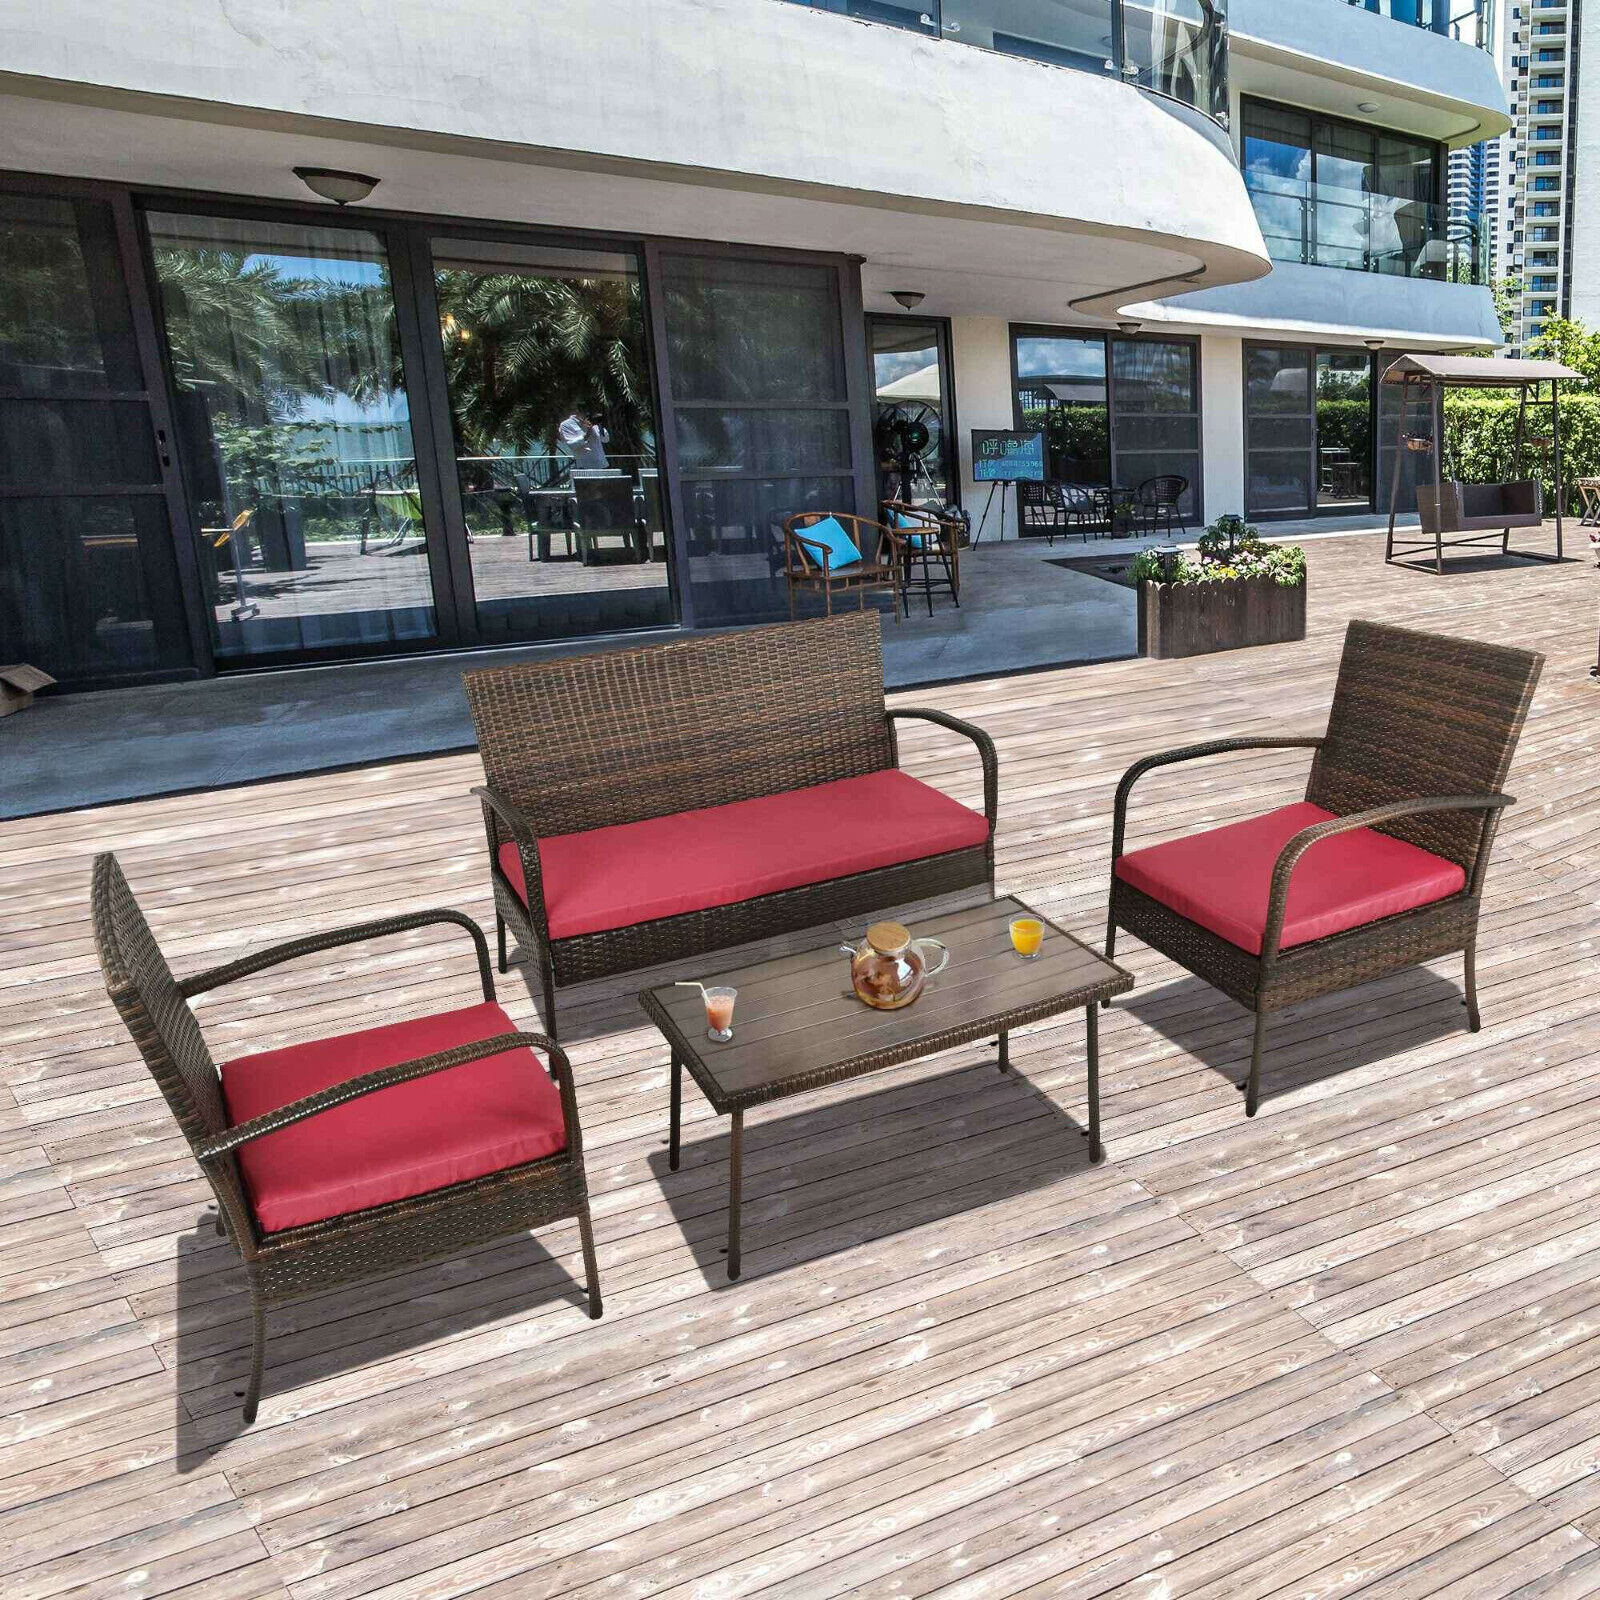 Garden Furniture - 4 PCS Outdoor Patio Wicker Sofa Set Rattan Sectional Furniture Garden Cushioned